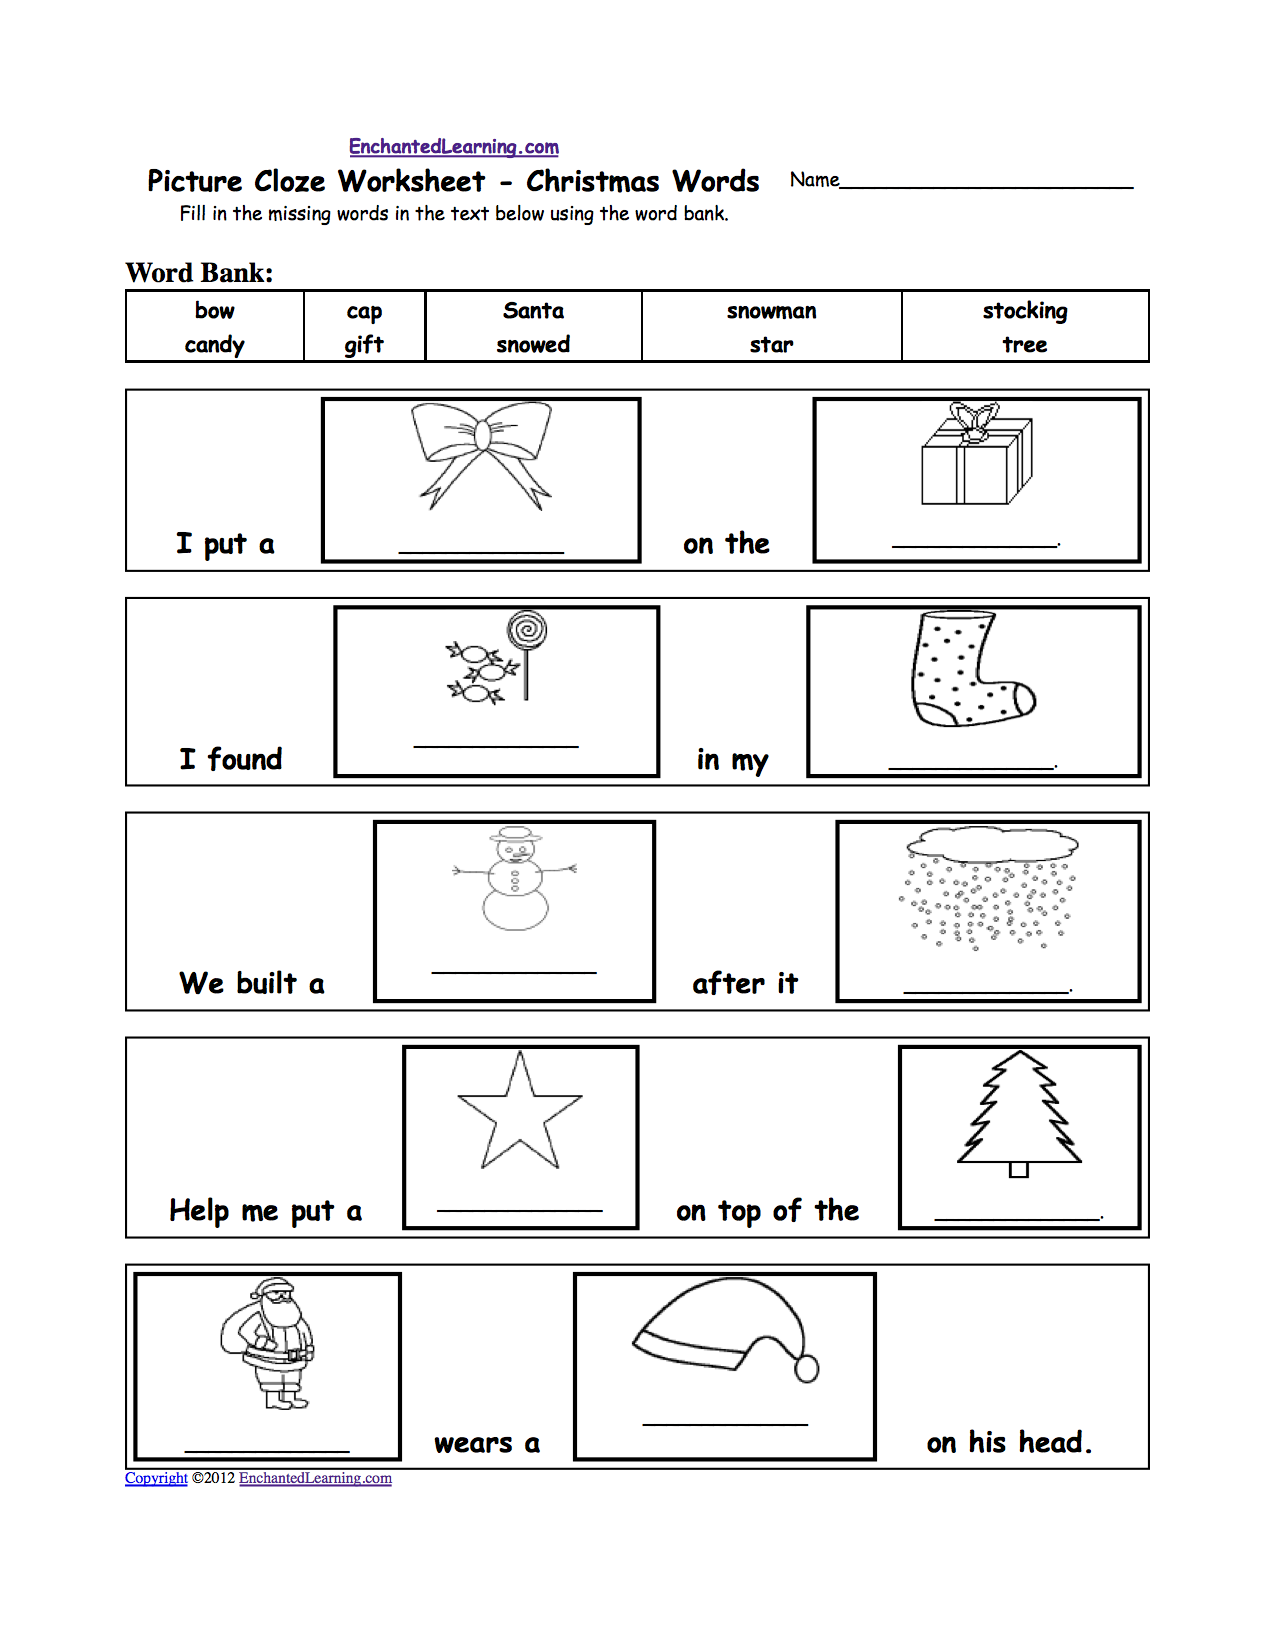 worksheet Christmas Printable Worksheets christmas activities spelling worksheets enchantedlearning com or go to the answers cloze picture for words printable worksheet